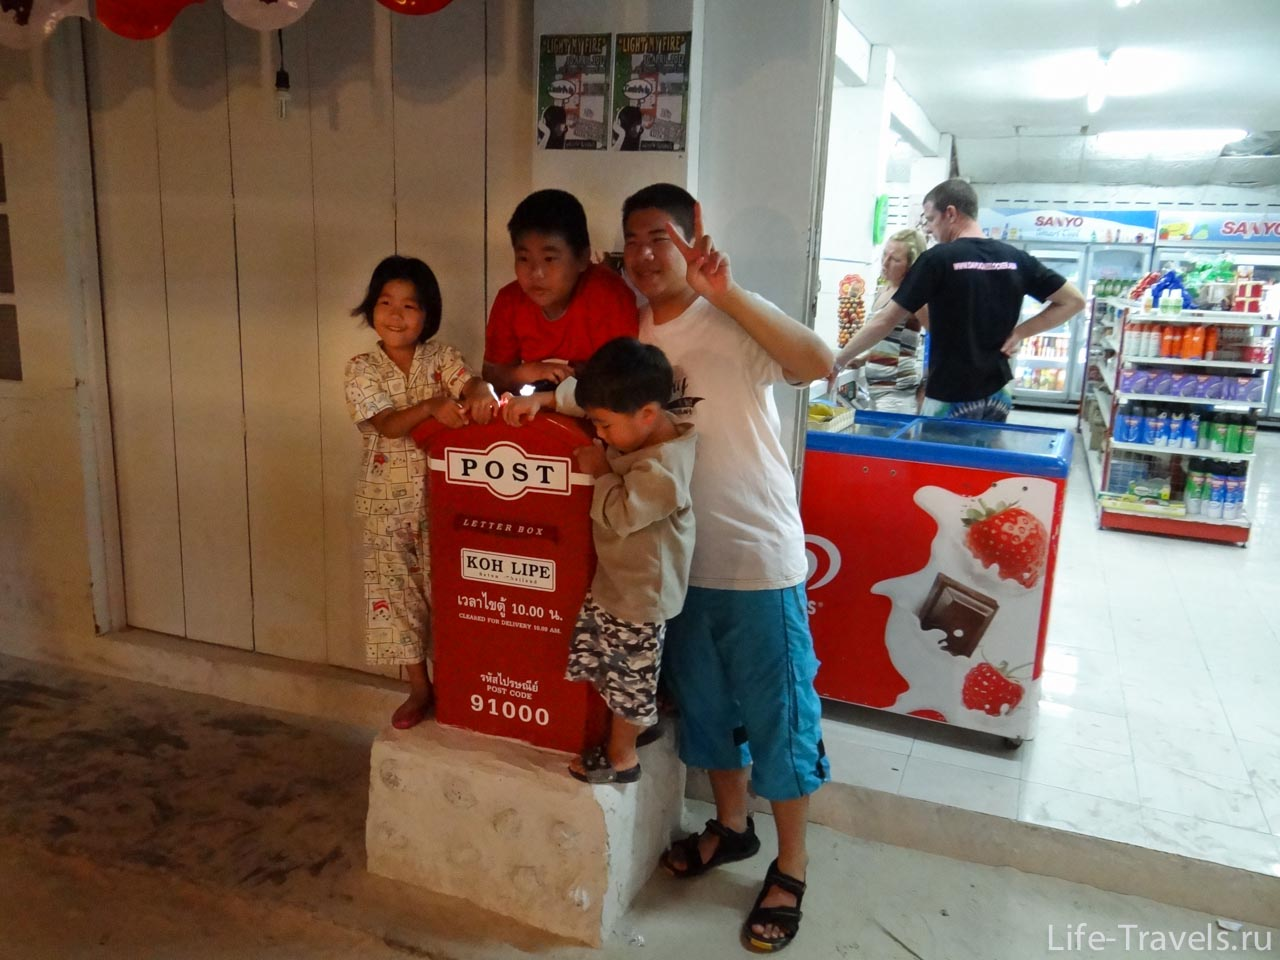 Koh Lipe post box